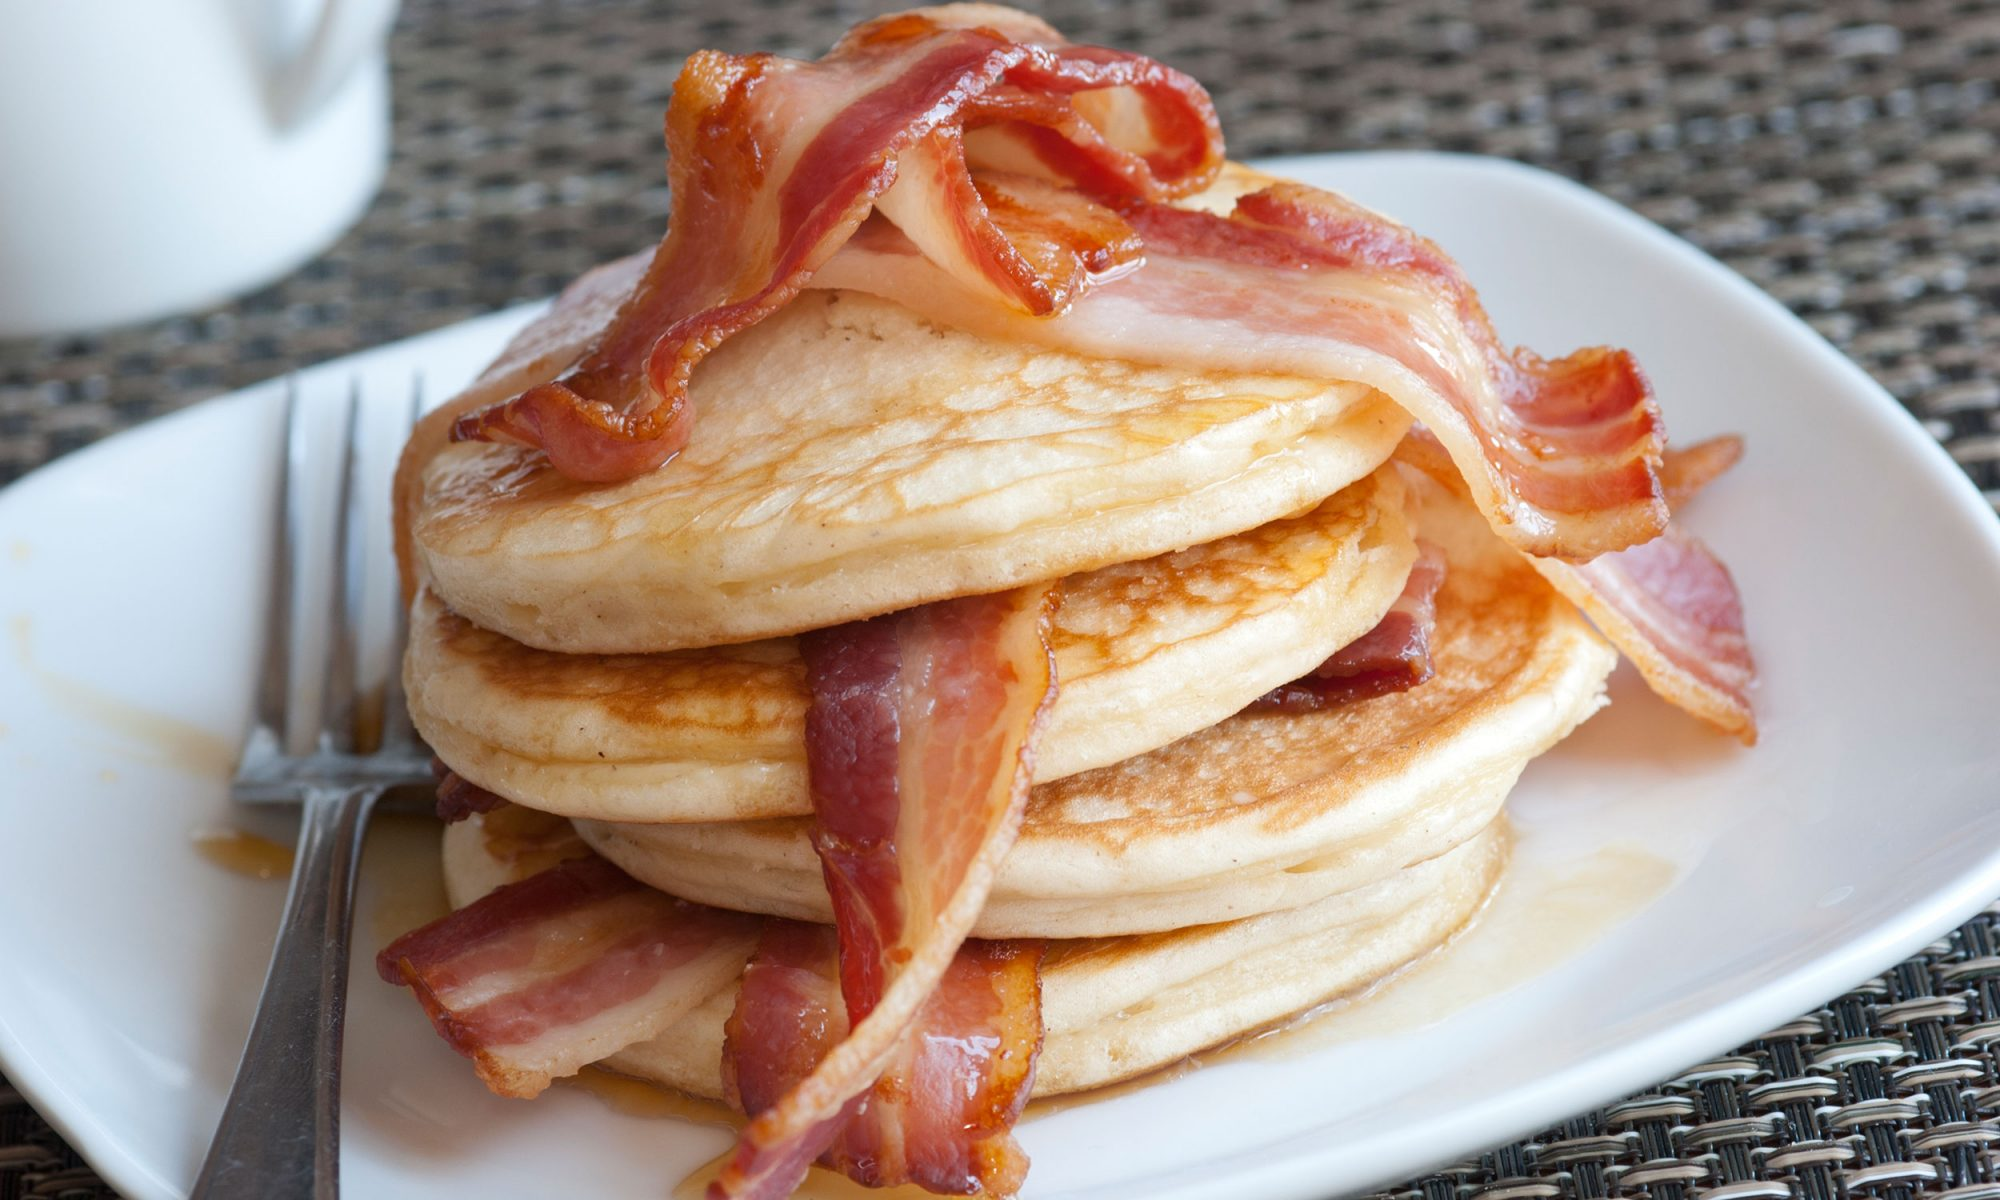 EC: Bacon Pancake Dippers Are the Perfect Handheld Breakfast